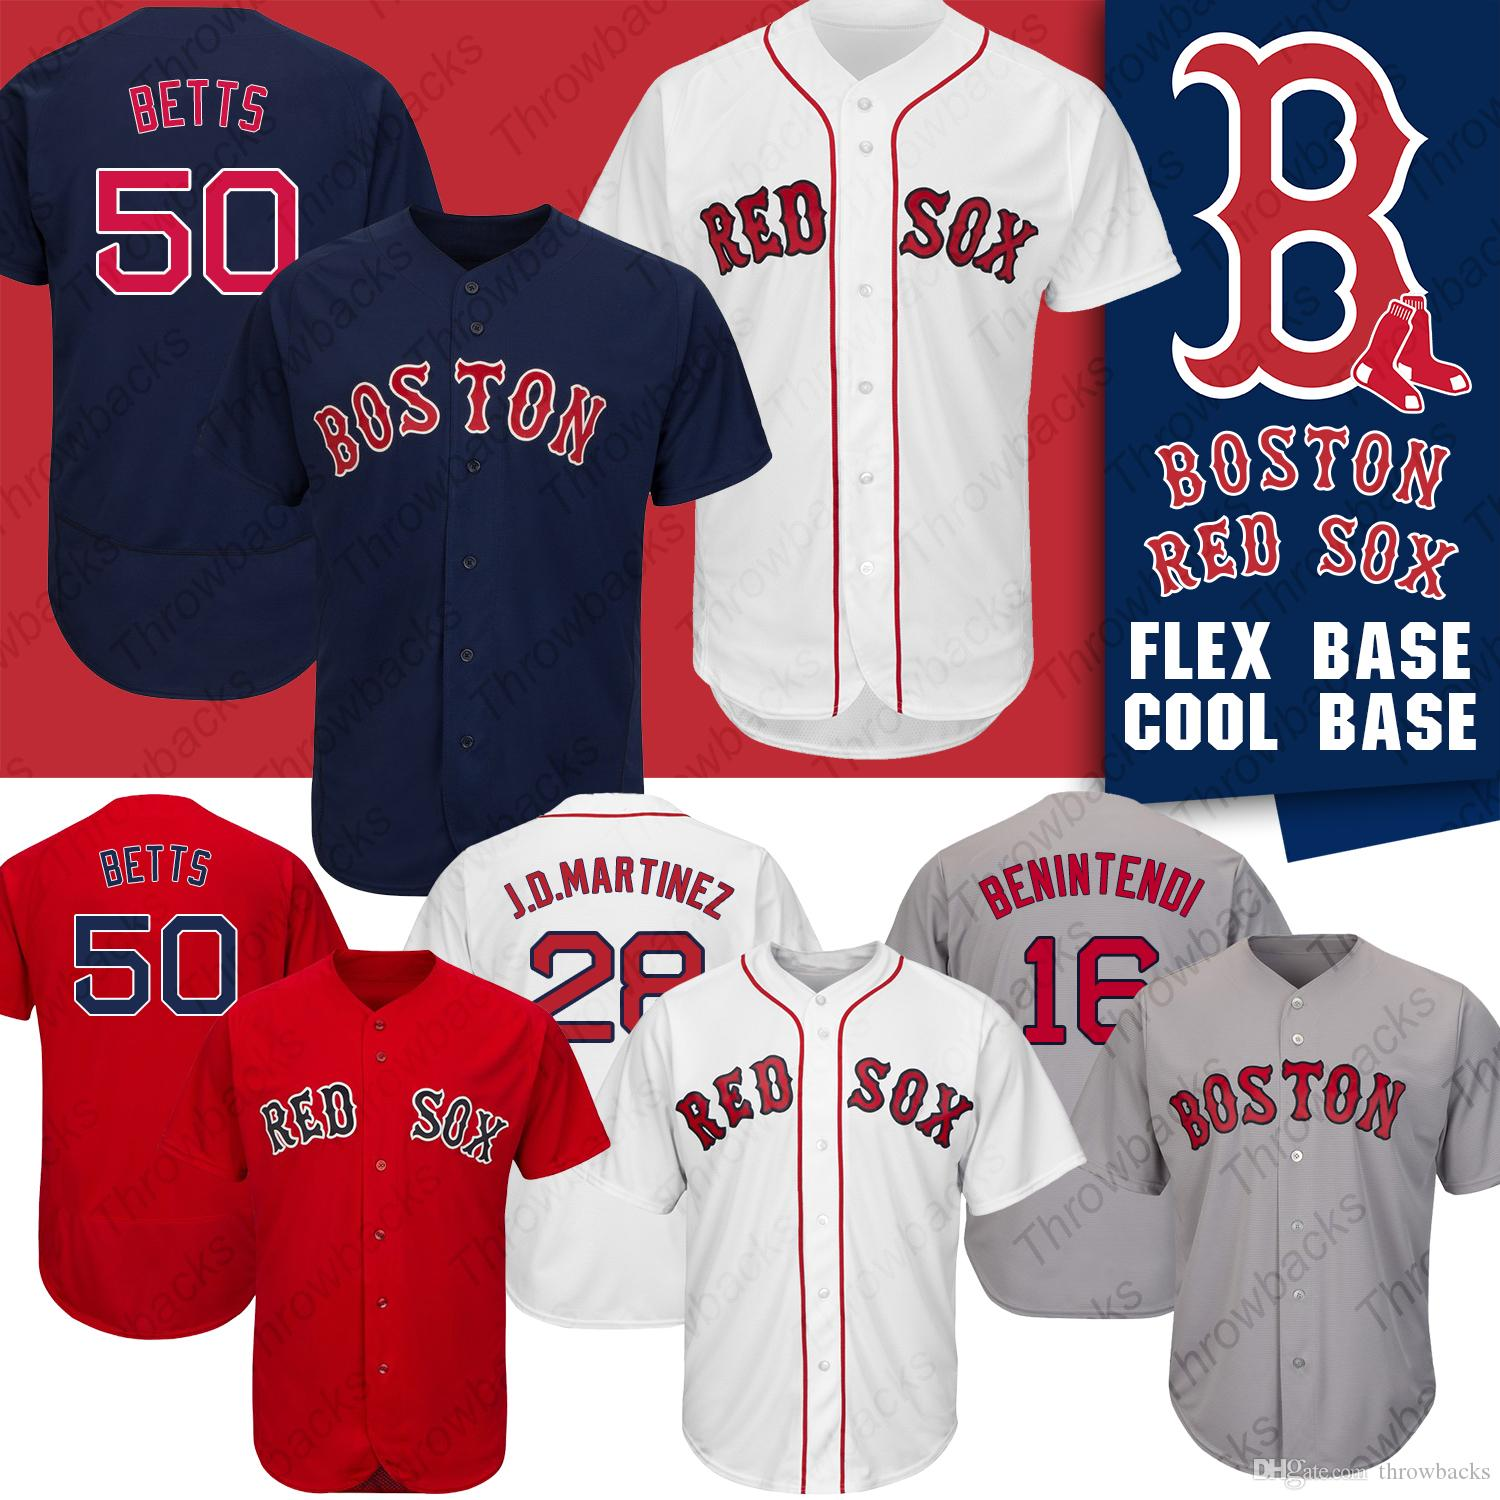 new product ecfbf 7ce83 Boston 2019 Red Sox Jerseys Mookie Betts Andrew Benintendi J.D. Martinez  Marcus Walden Baseball Jersey Cool Base Flex Base